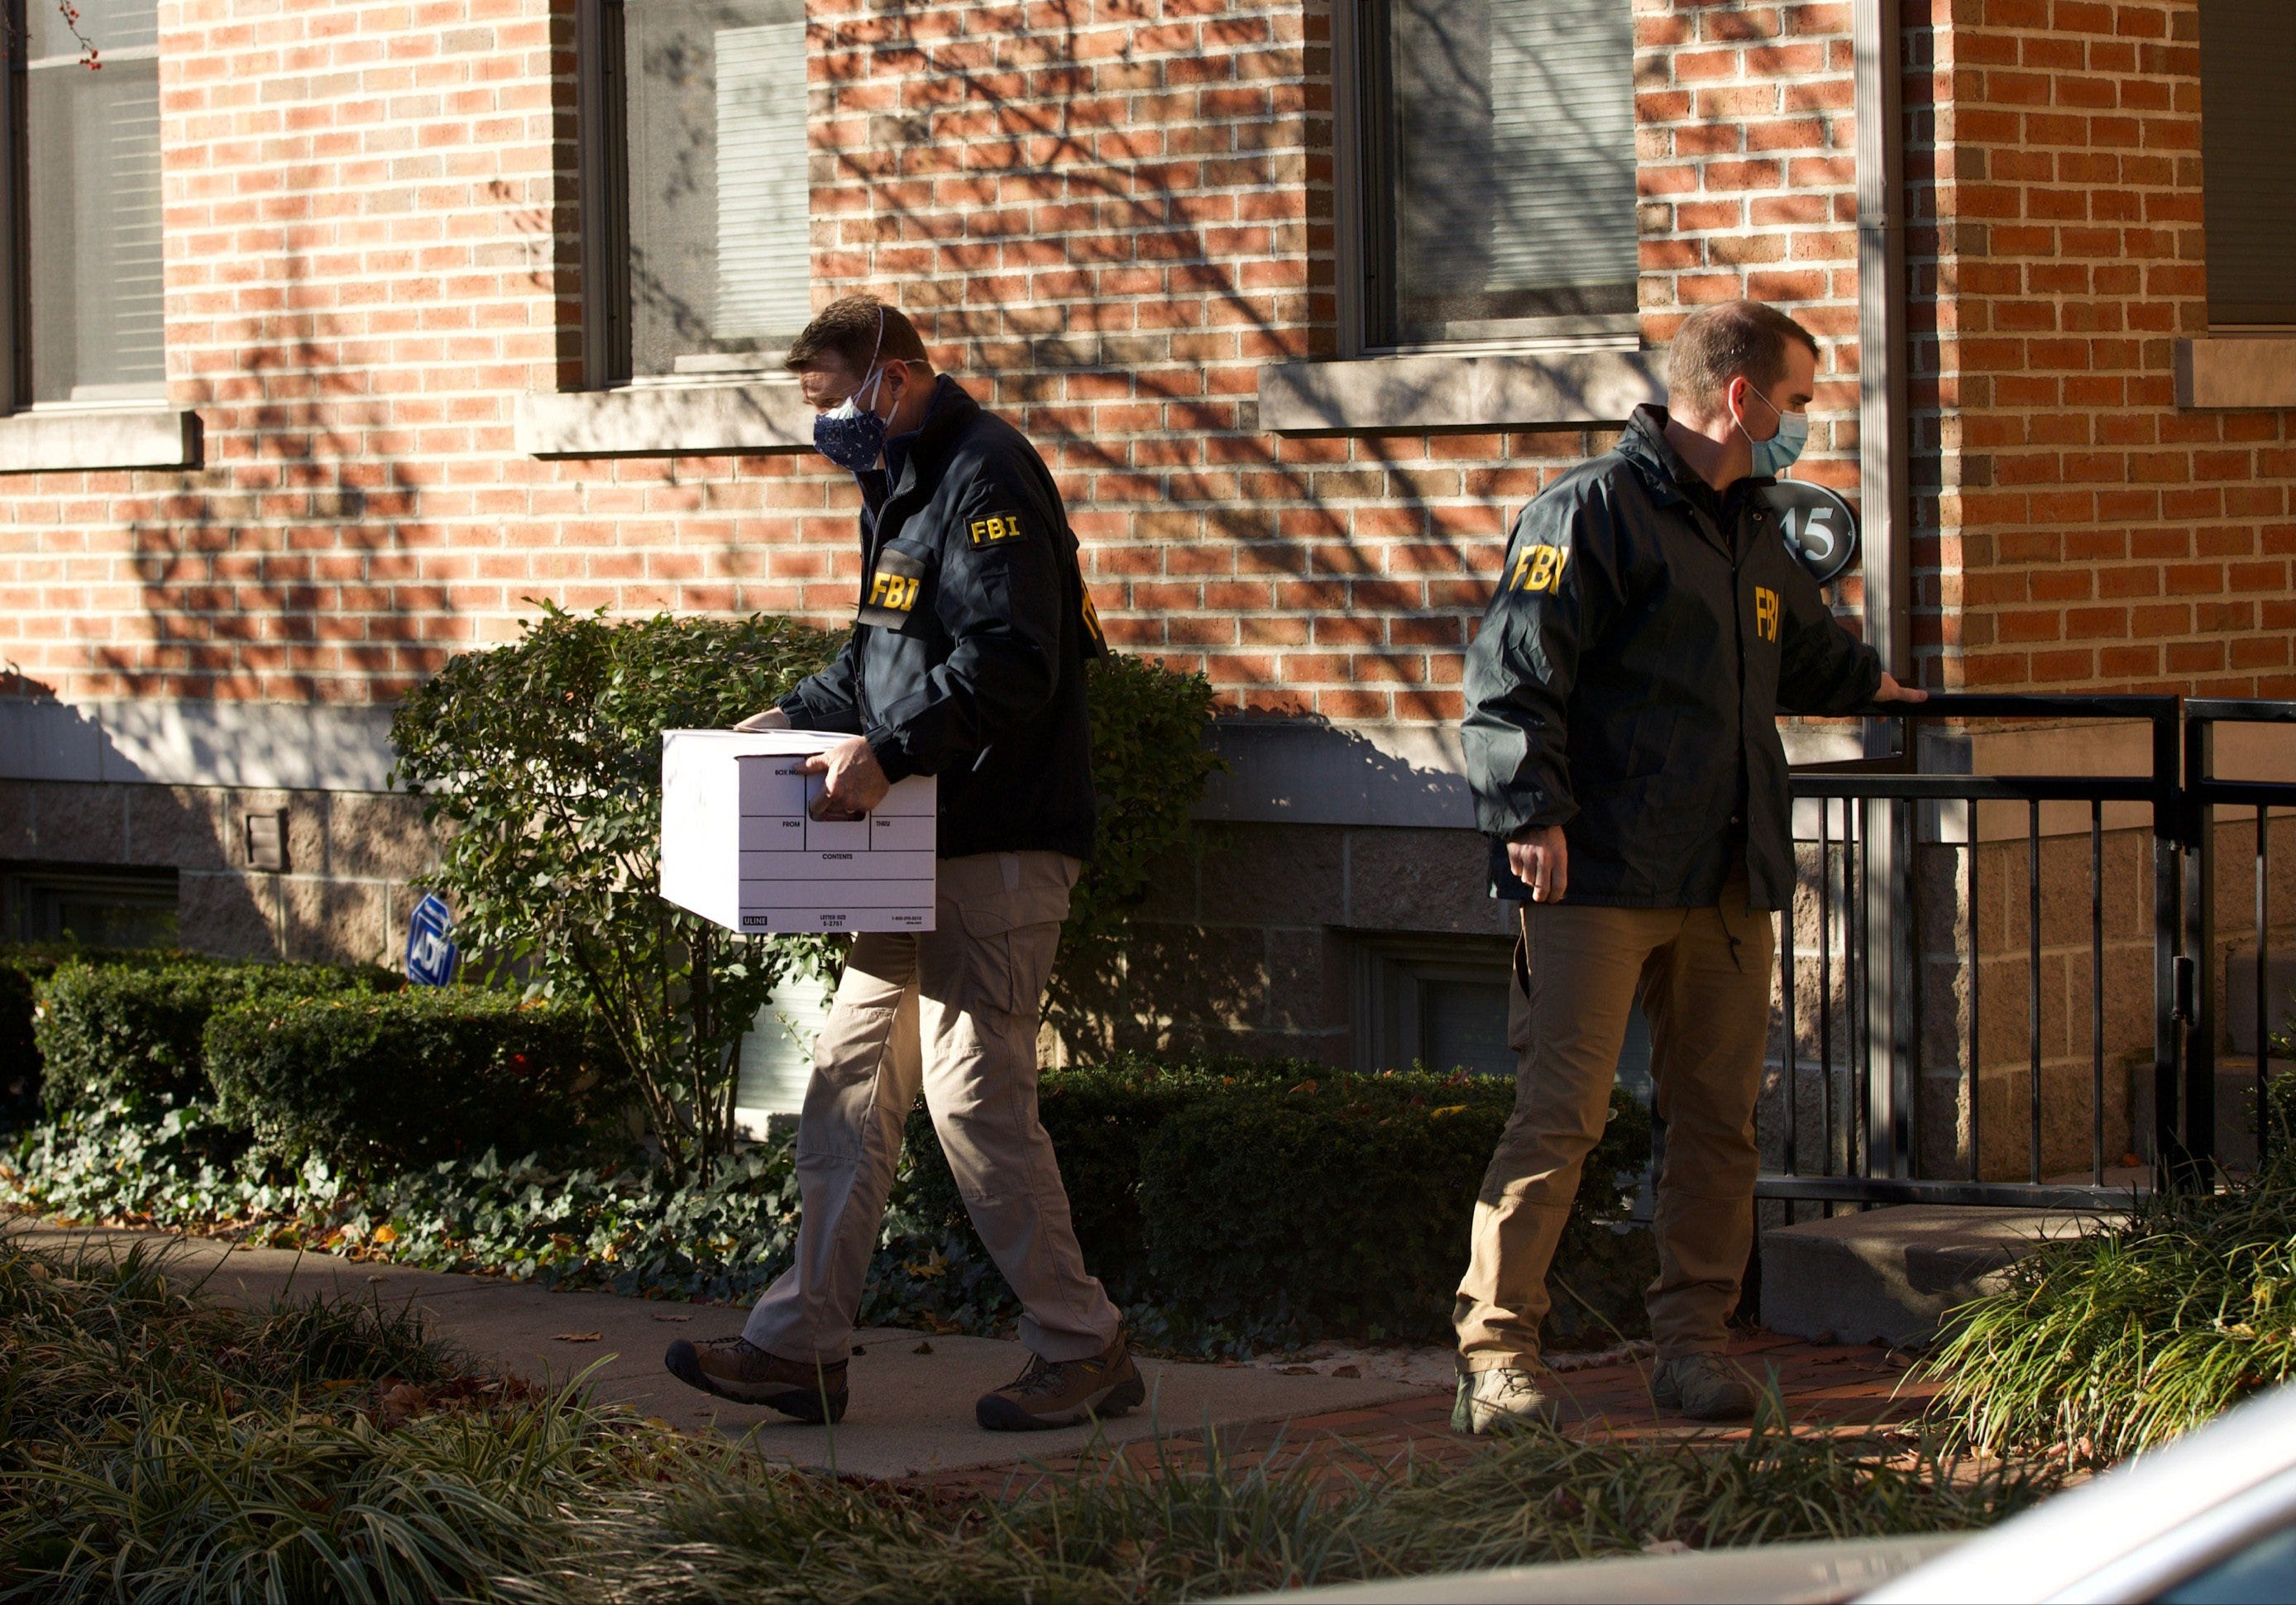 FBI agents remove items from the German Village home of Public Utilities Commission of Ohio Chairman Sam Randazzo in Columbus on Nov. 16, 2020.